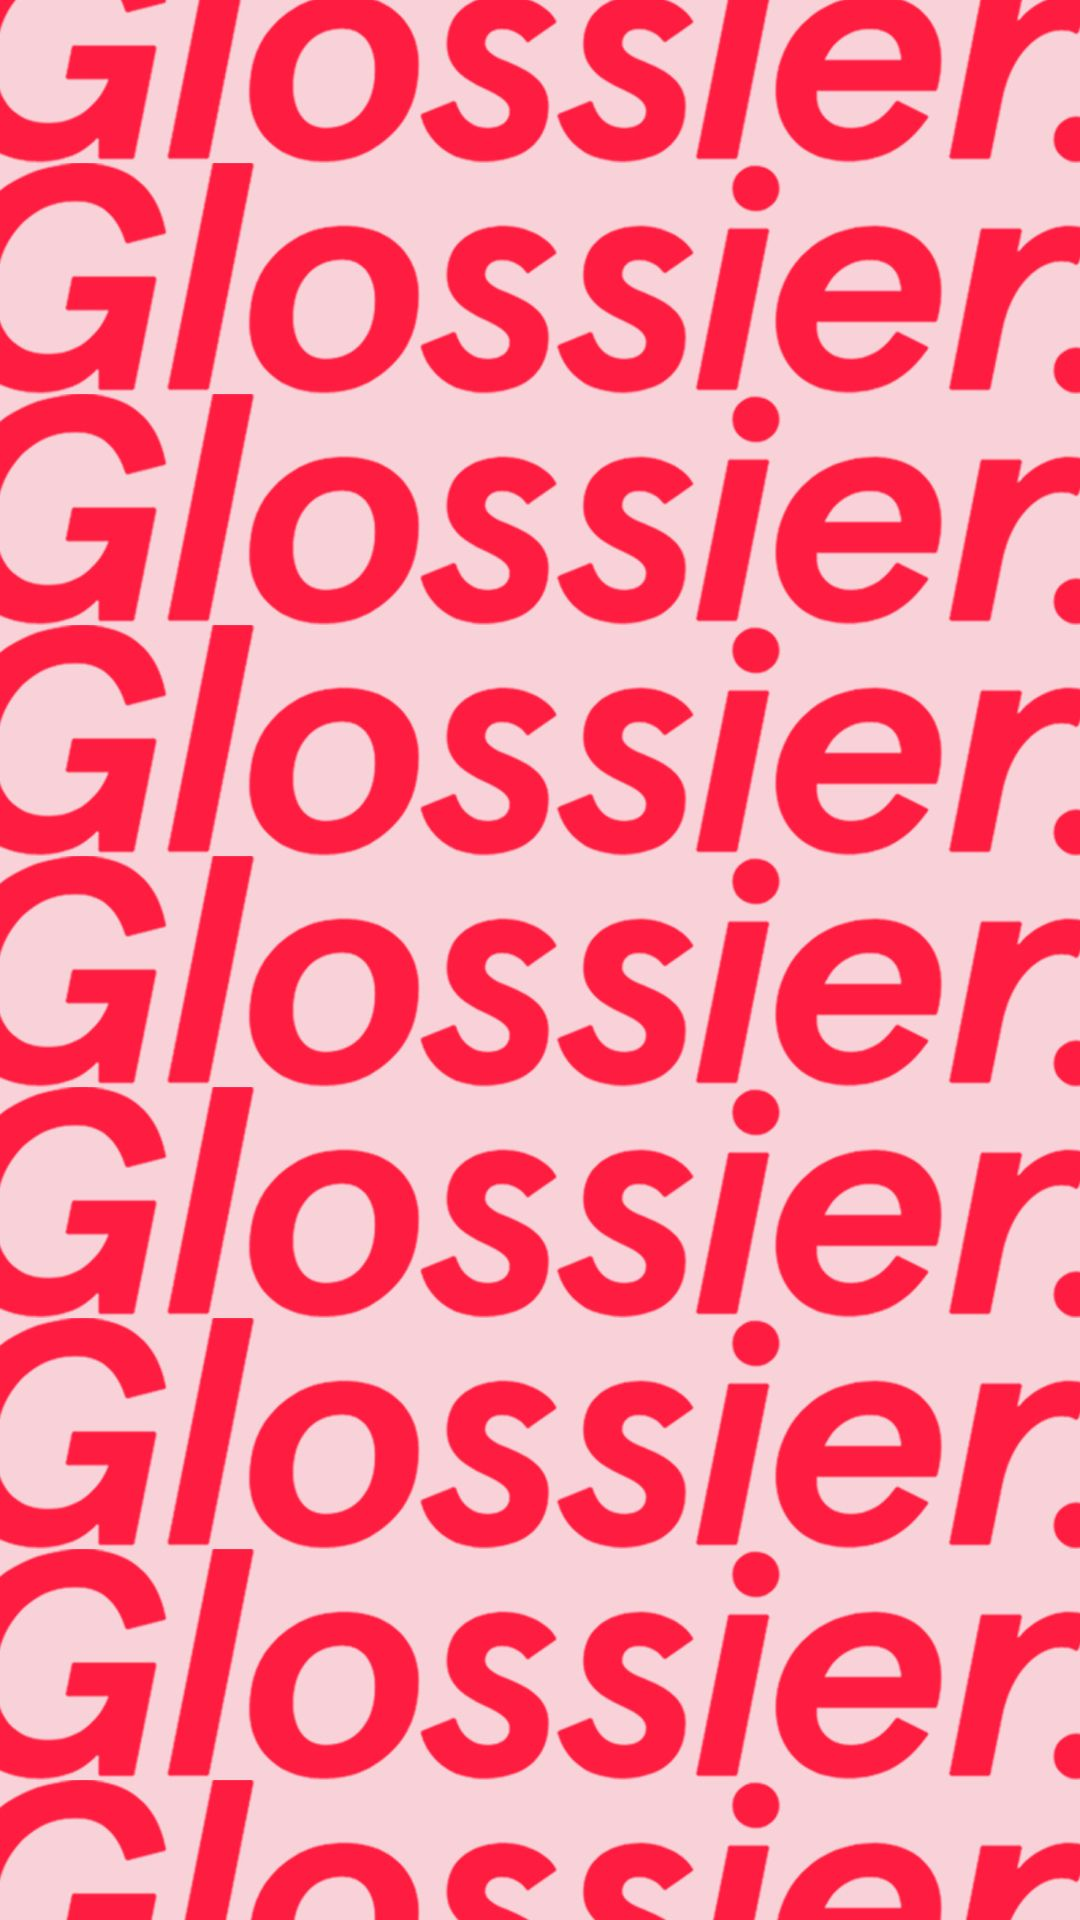 Glossier. / Phone Wallpaper / Design / Red and Pink | Art ...